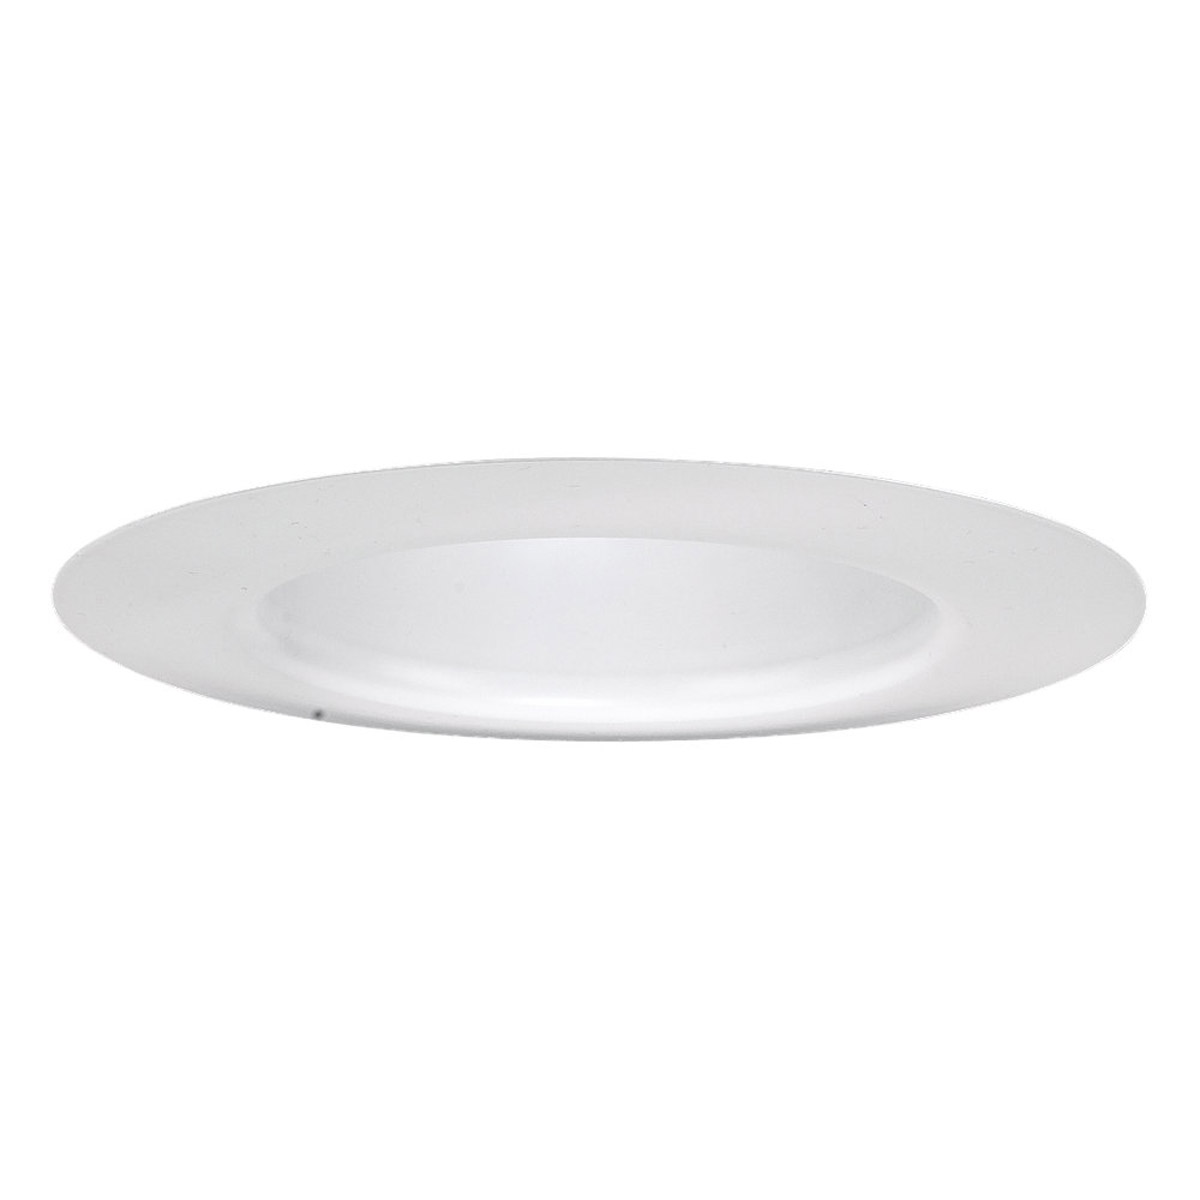 Sea Gull Lighting Signature Recessed Trim Only in White 11120AT-15 photo